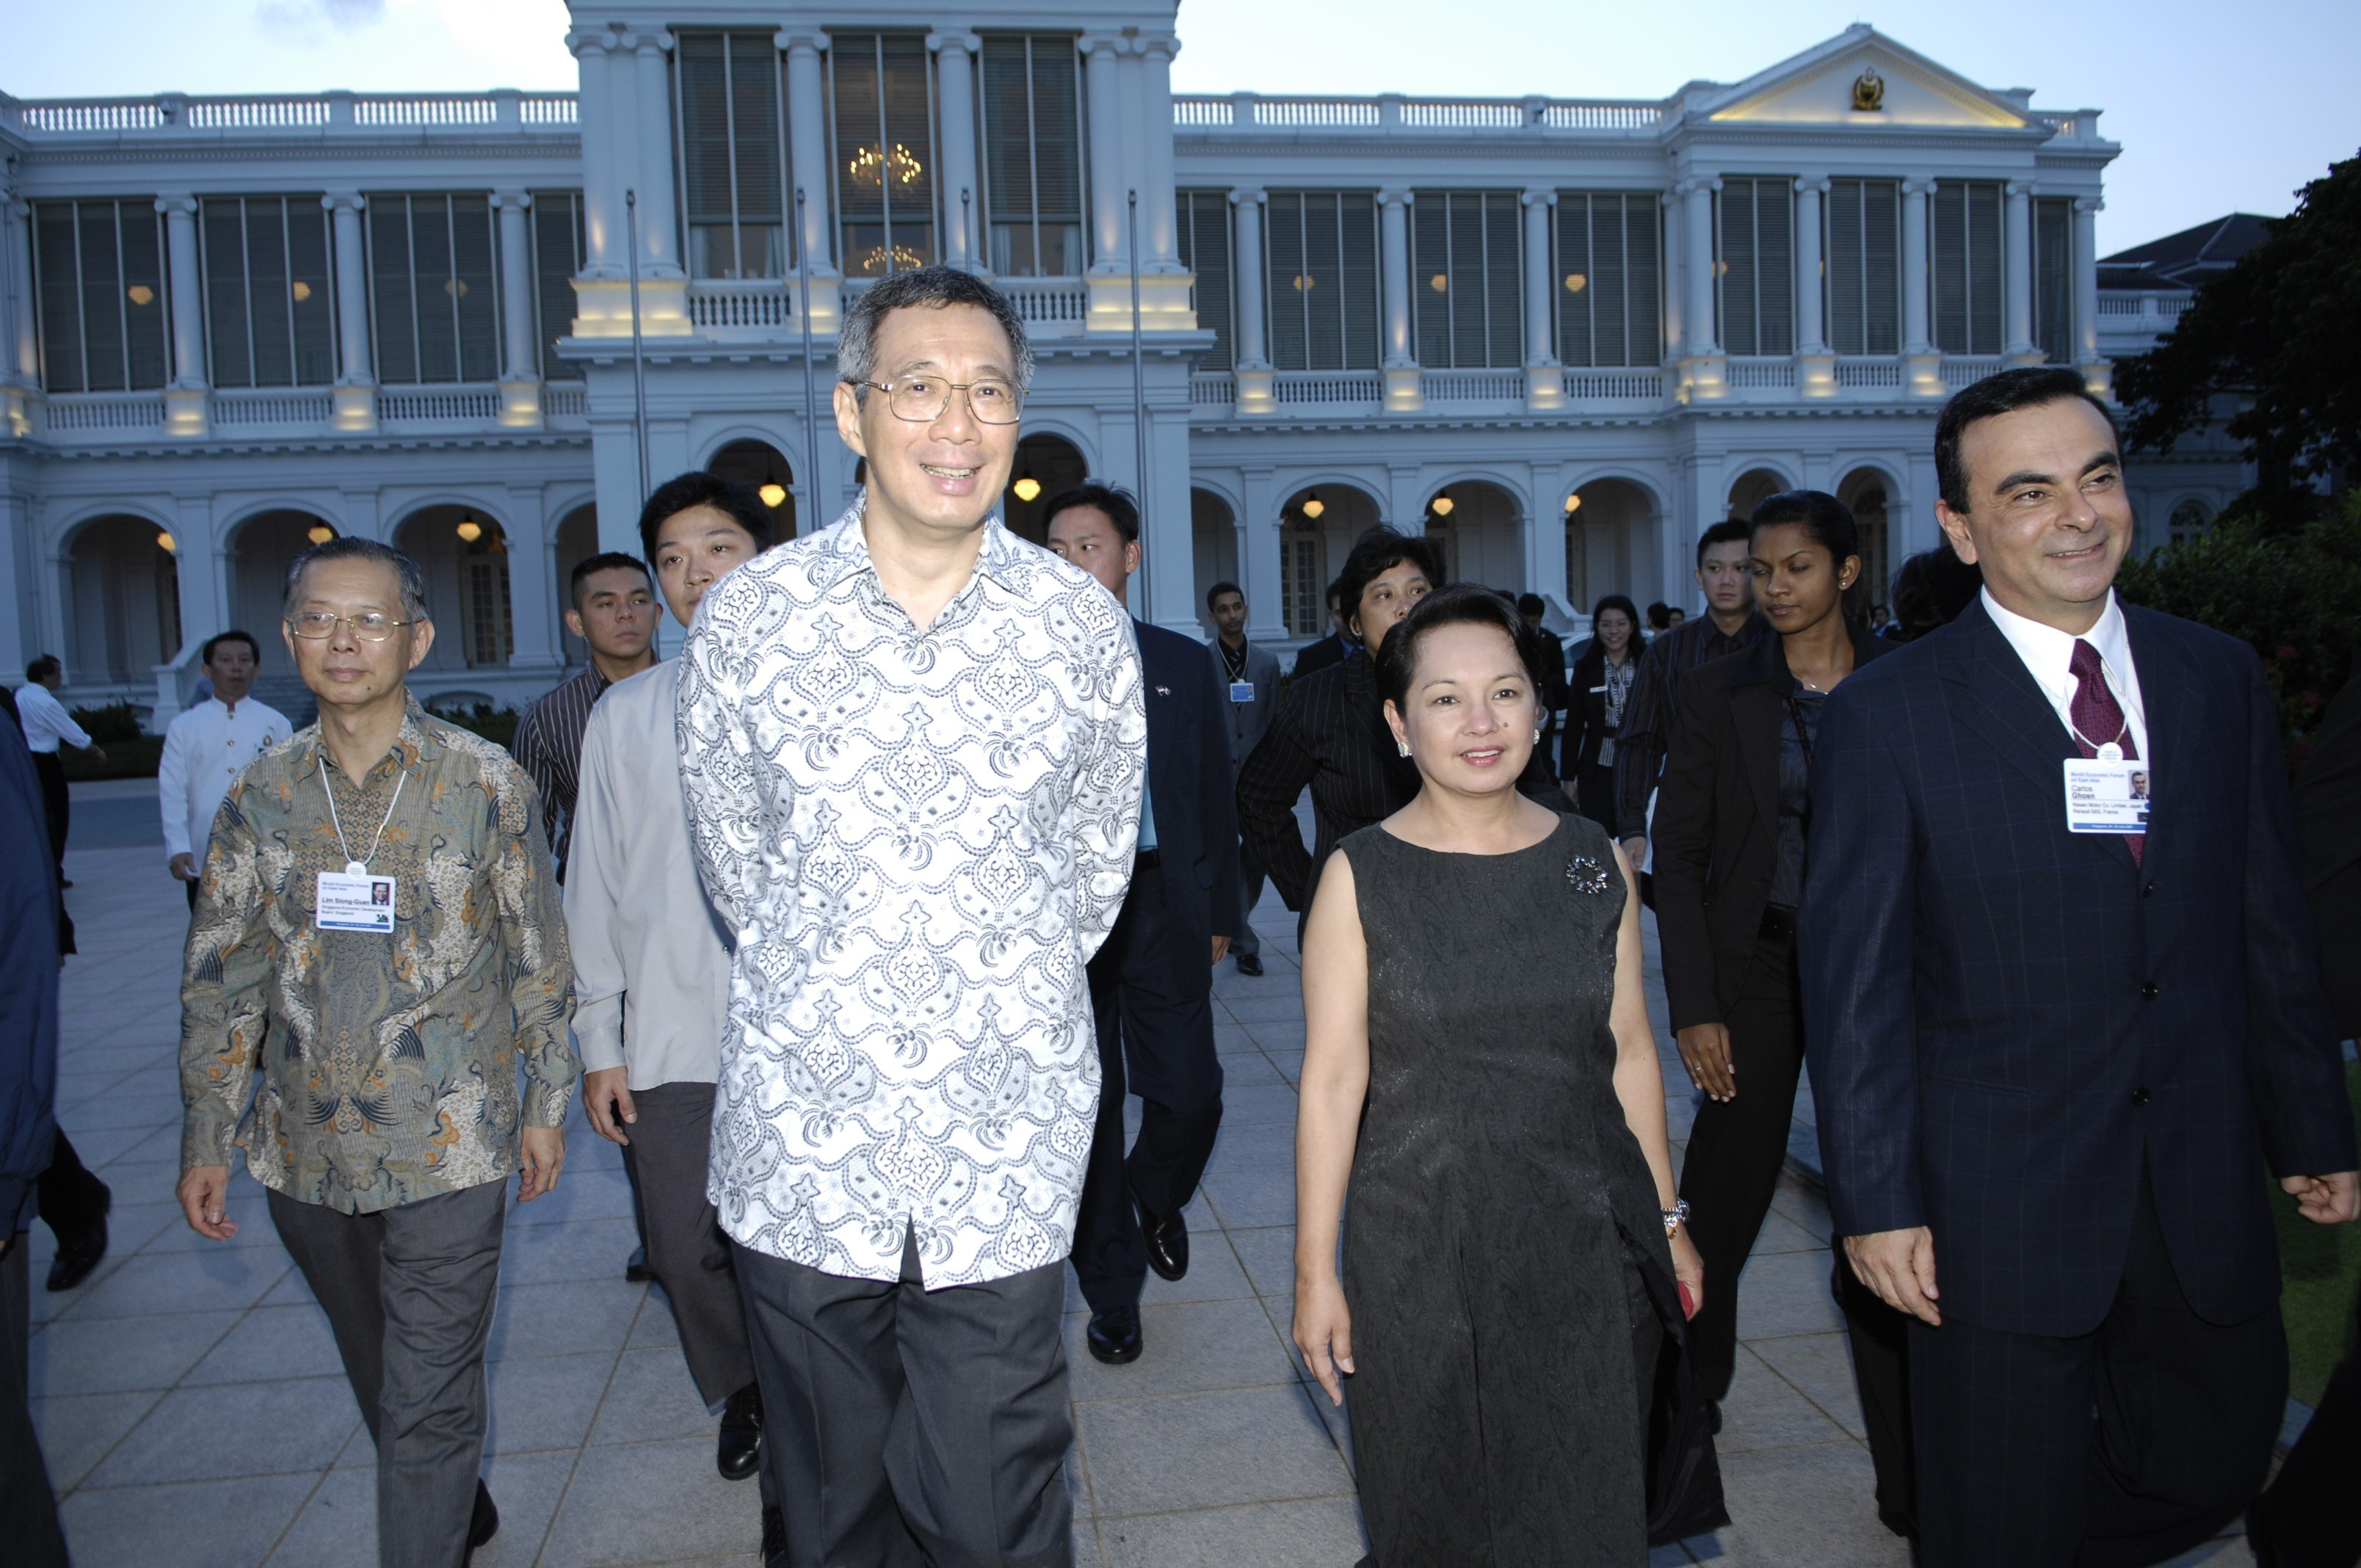 Lee Hsien-Loong, Prime Minister of Singapore, Gloria Macapagal Arroyo, President of the Philippines and Carlos Ghosn, President and Chief Executive Officer, Renault, walking together to the Welcome Reception at the Istana